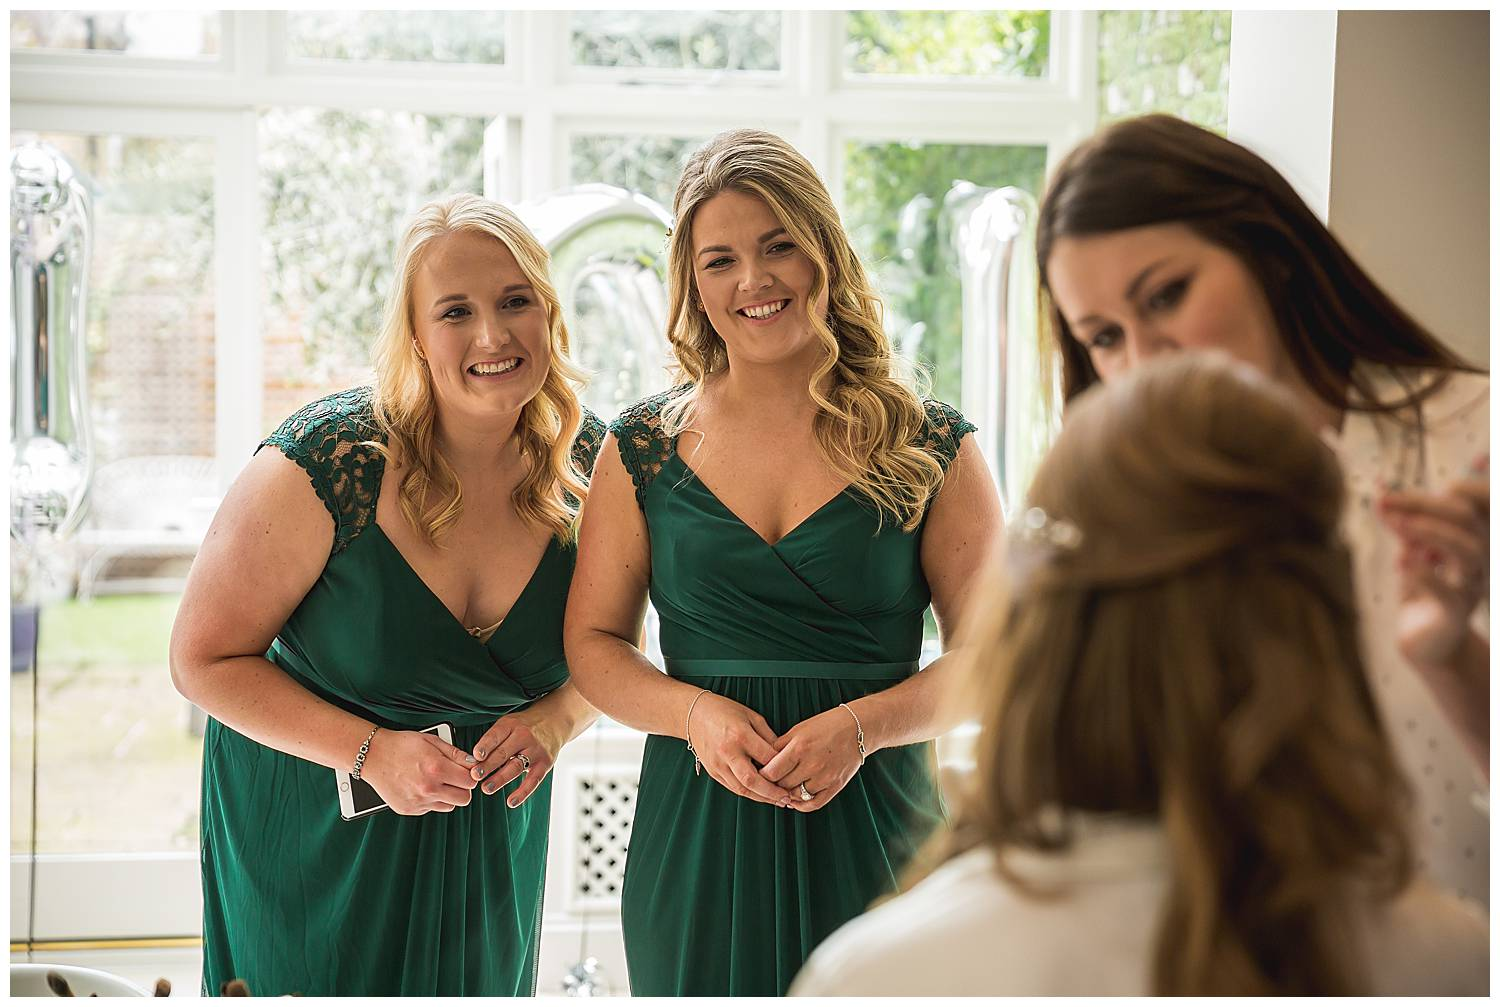 bridesmaids in green dresses are looking at the bride